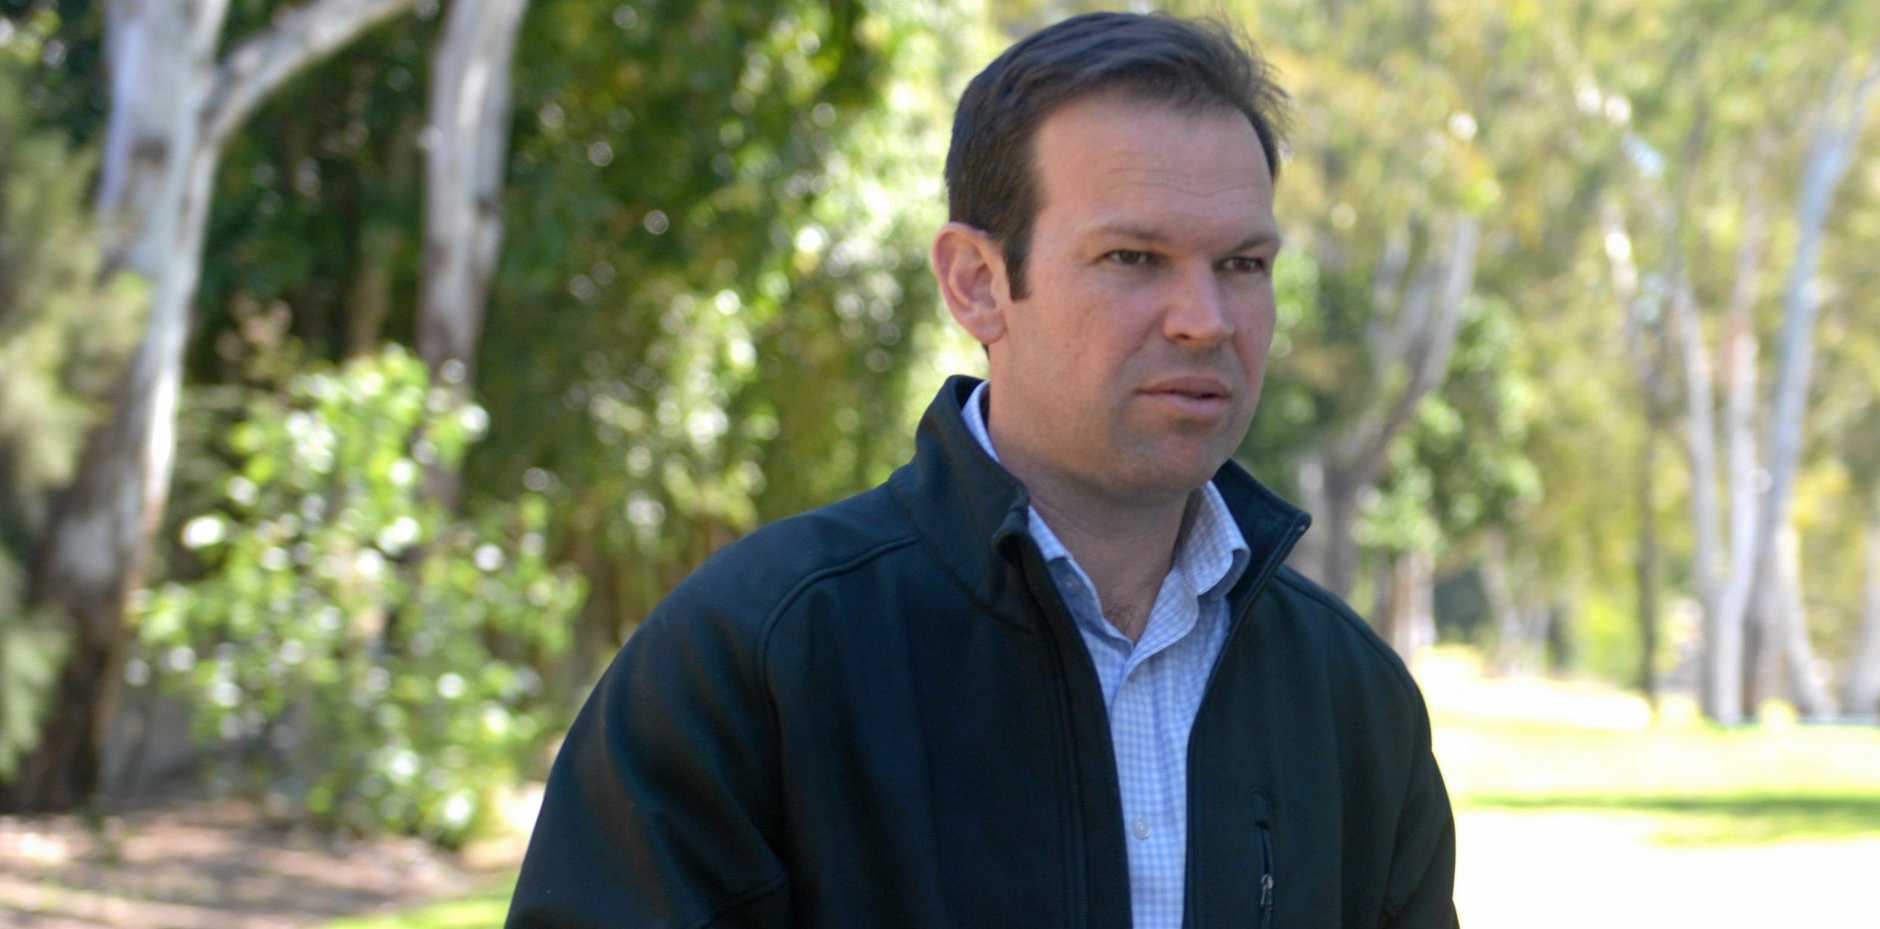 NOT IMPRESSED: Senator for Queensland Matthew Canavan has lashed out at the Queensland Government's review into the devastating bushfires that tore through parts of the state last year.